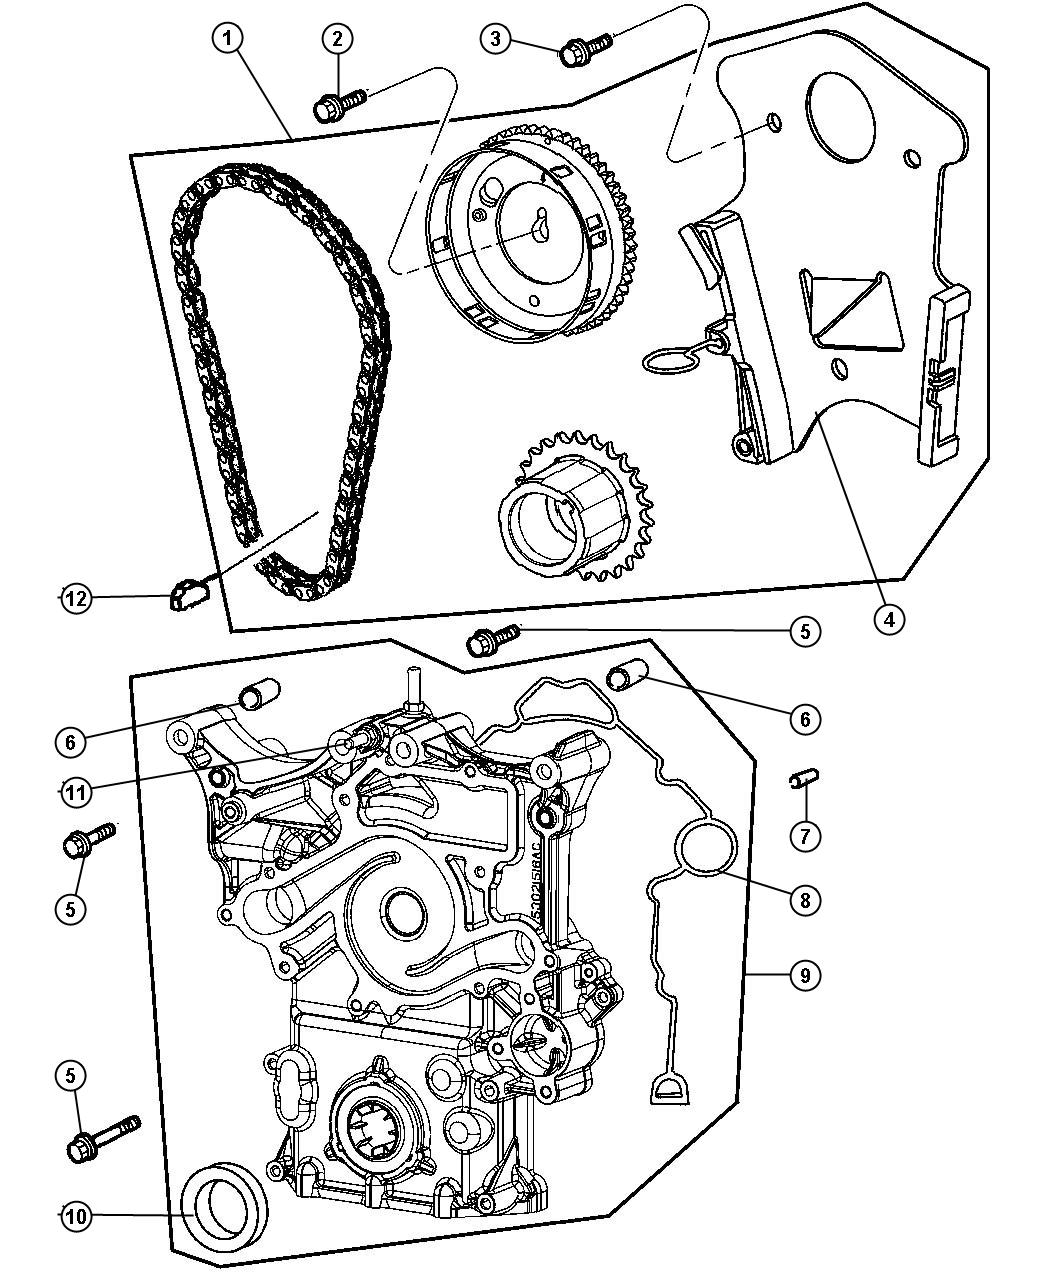 Dodge Magnum Used For  Bolt And Coned Washer  Used For  Screw And Washer  Hex  Hex Head